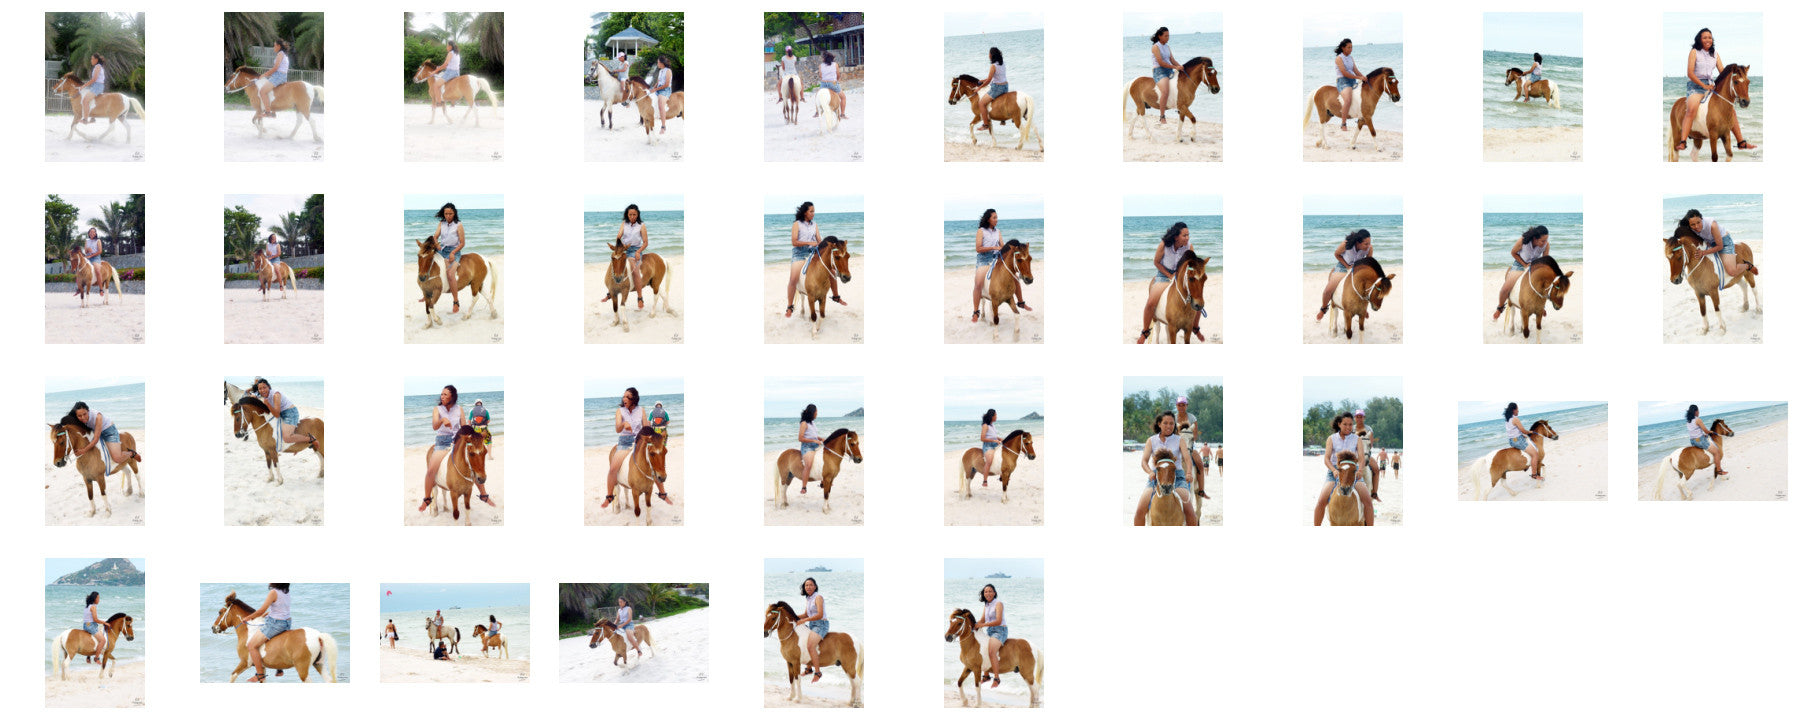 Nam in Hotpants Riding Bareback on Brown-White Pony, Part 3 - Riding.Vision